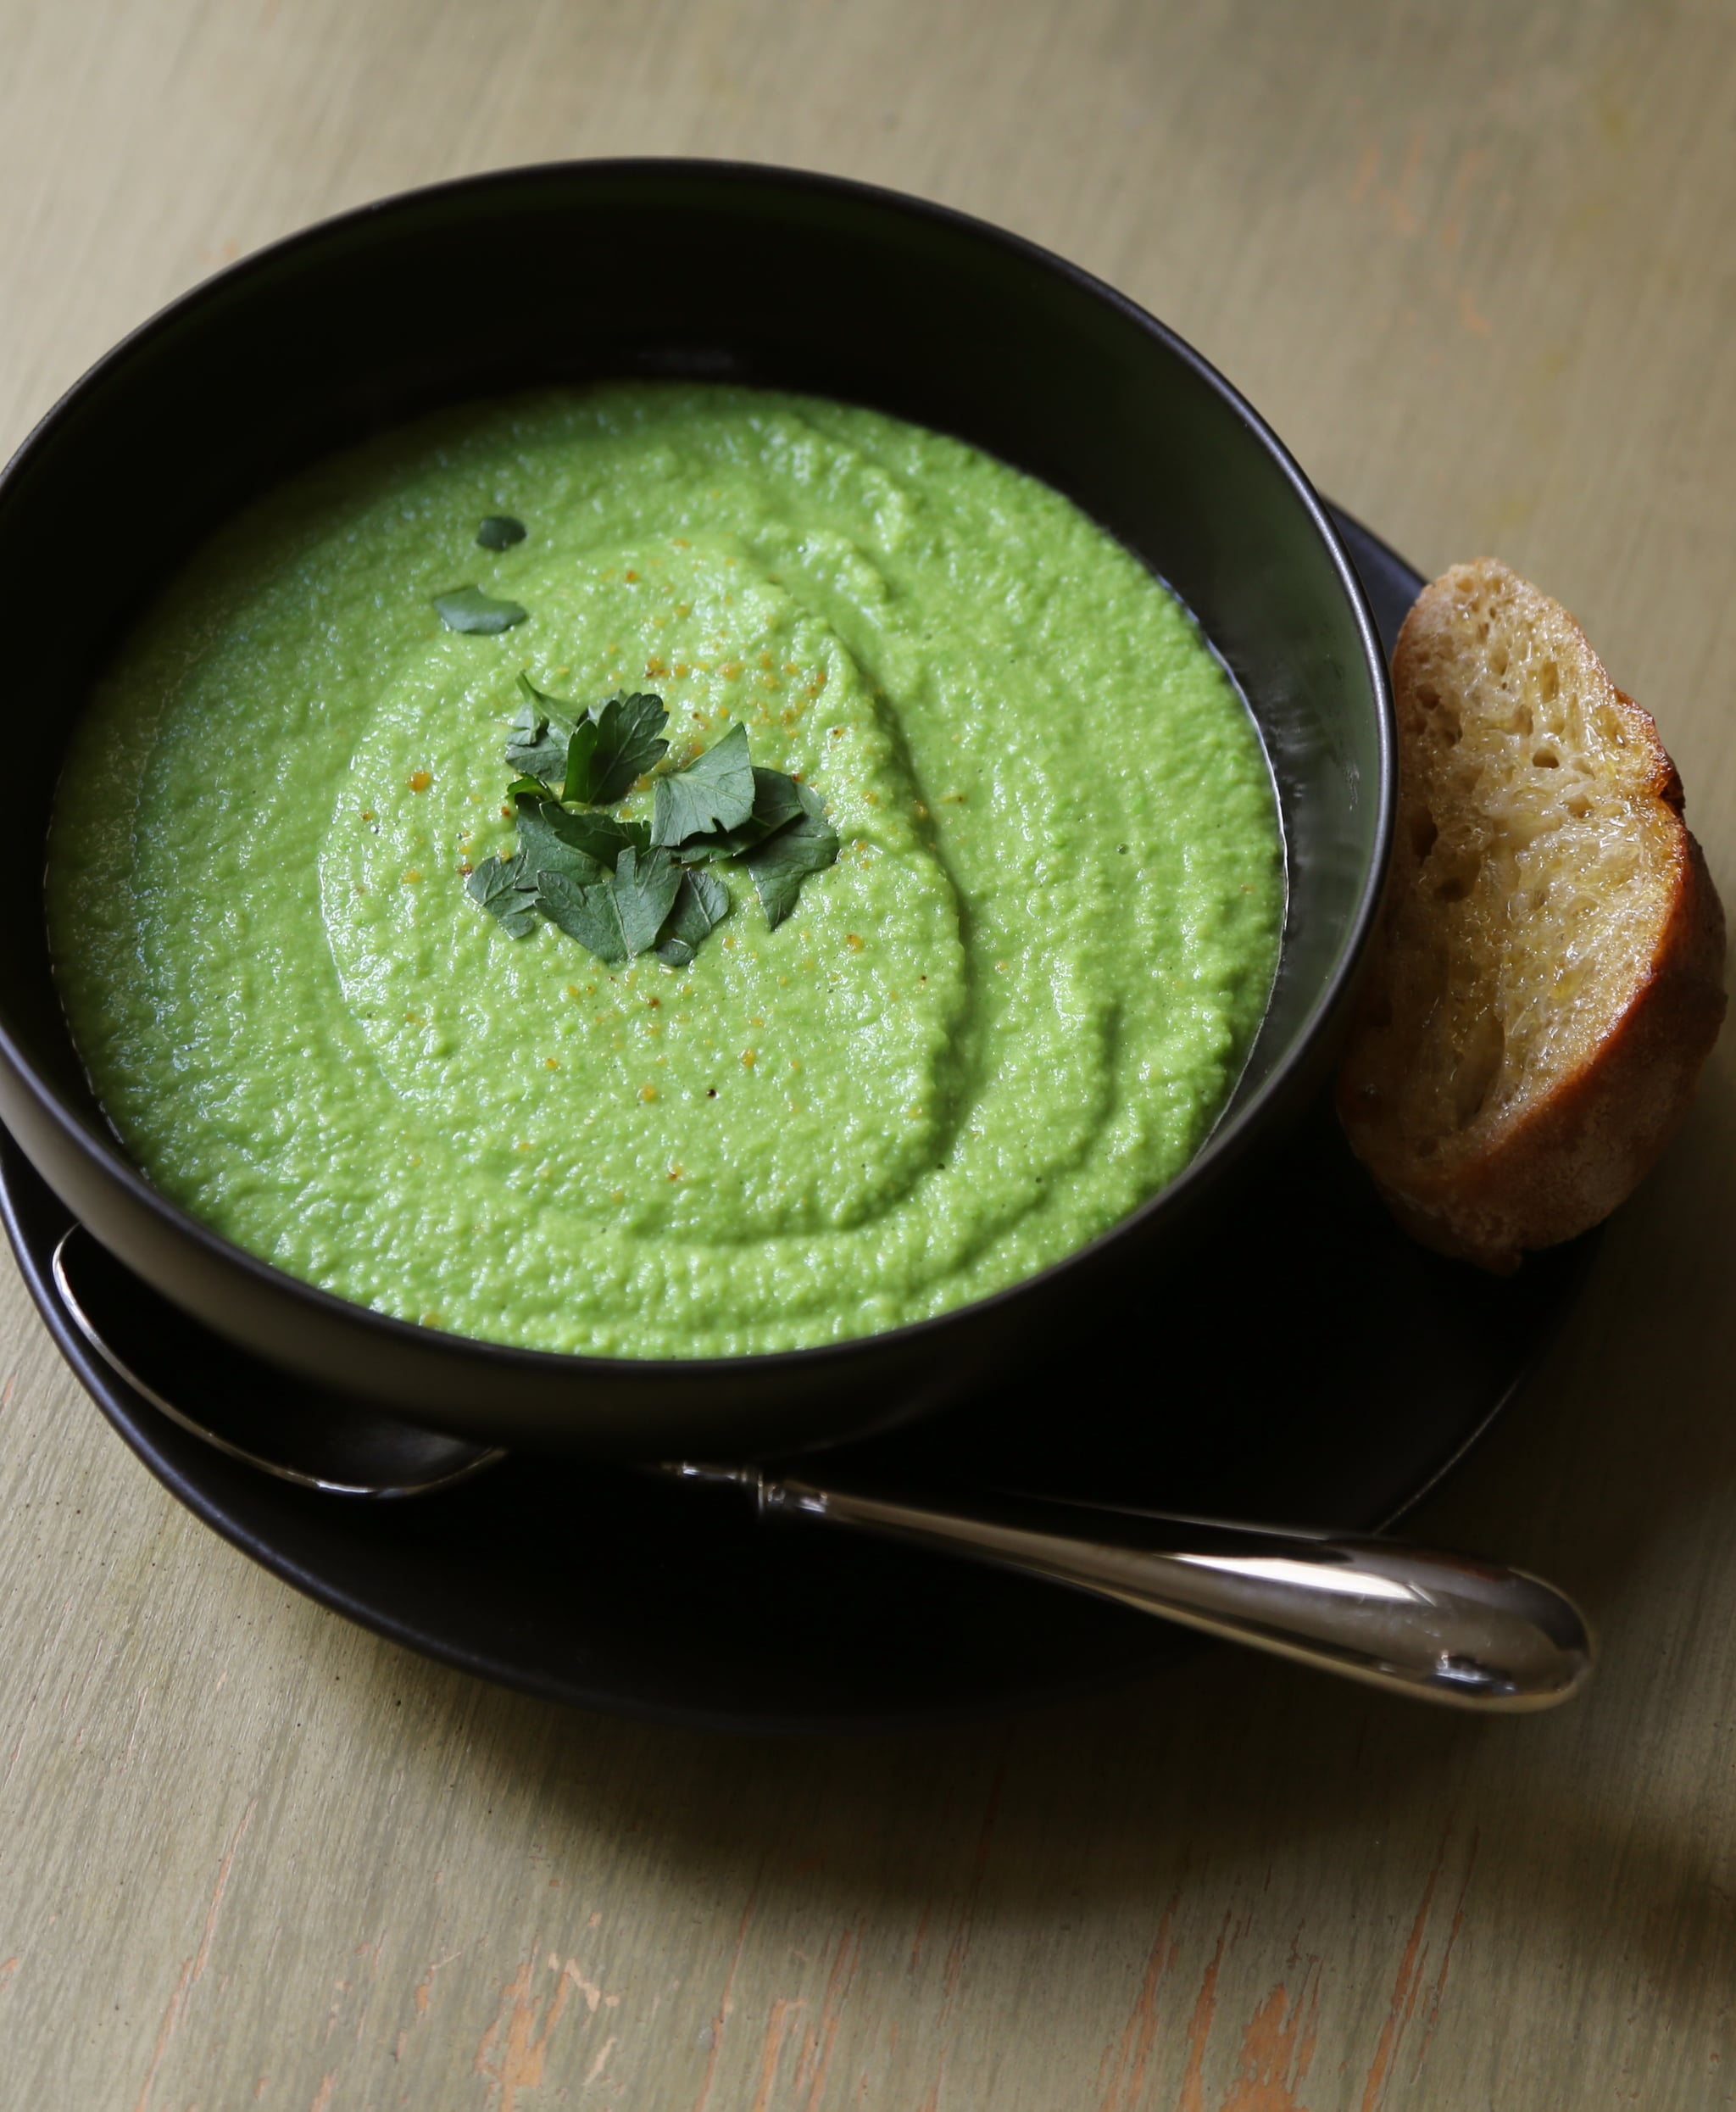 Pea soup recipes easy